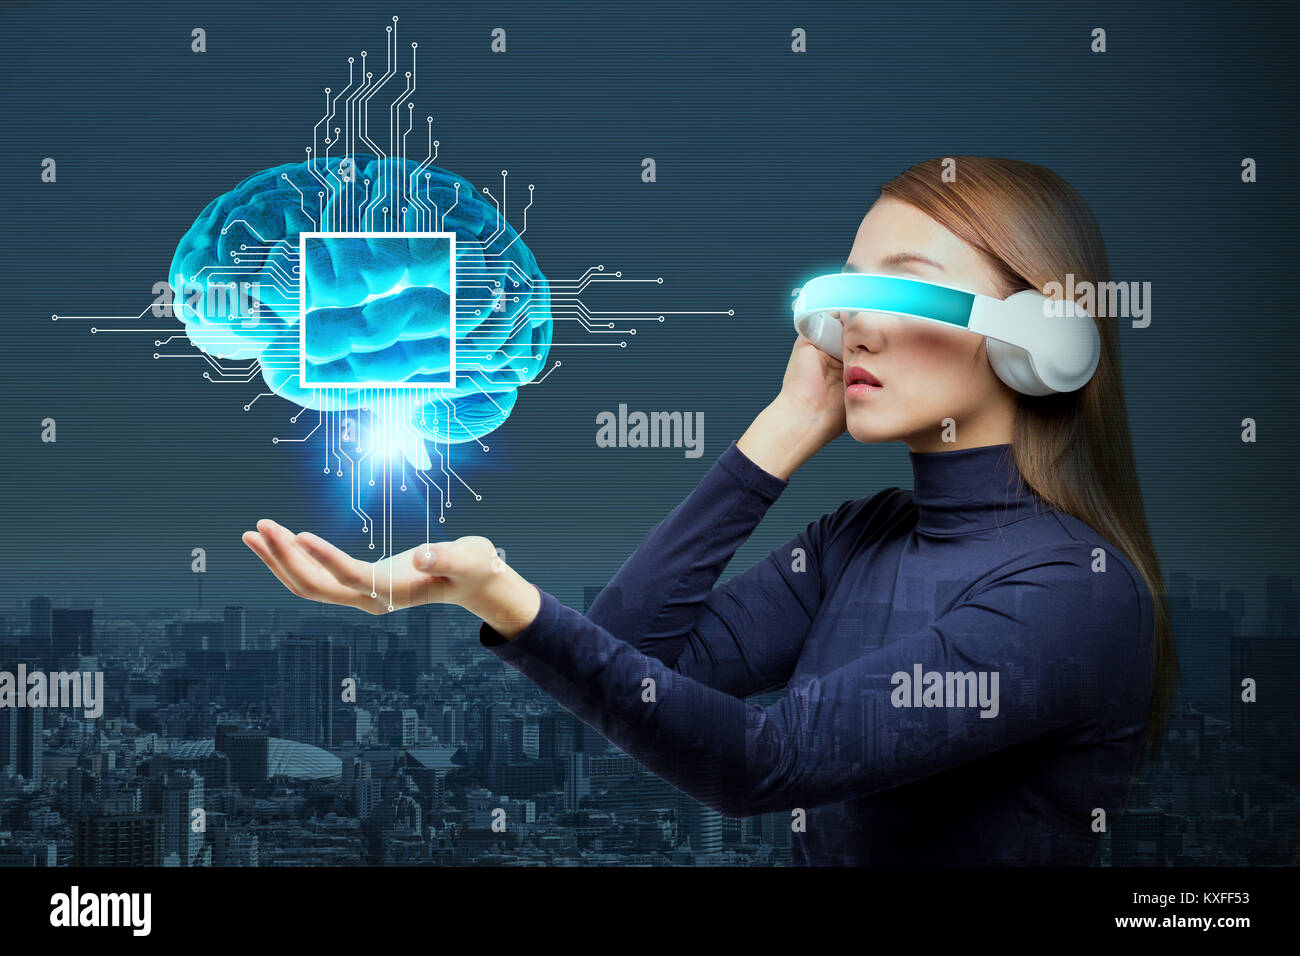 L'Intelligence Artificielle(IA) concept, rendu 3D, image abstraite Visual Photo Stock